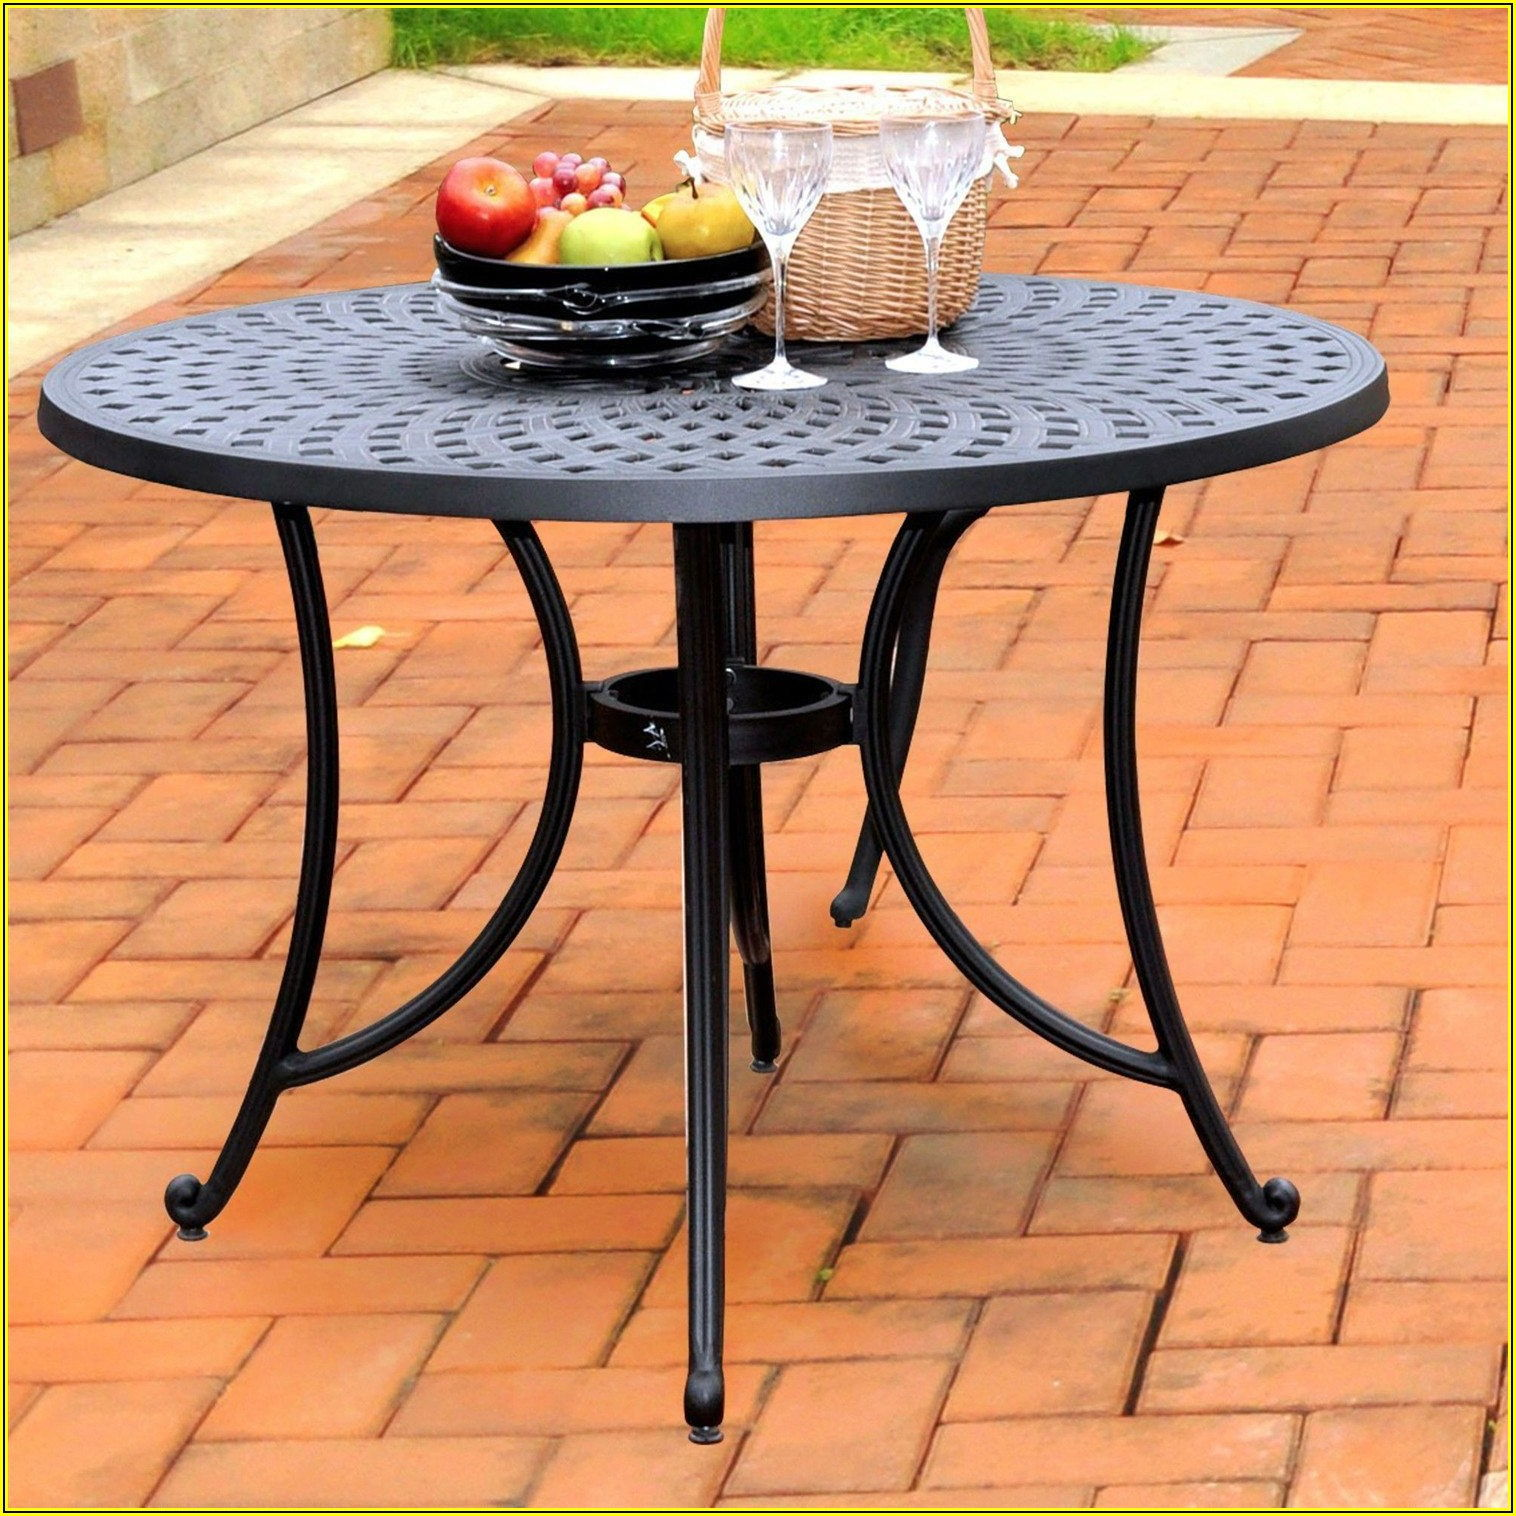 42 Inch Round Patio Table And Chairs